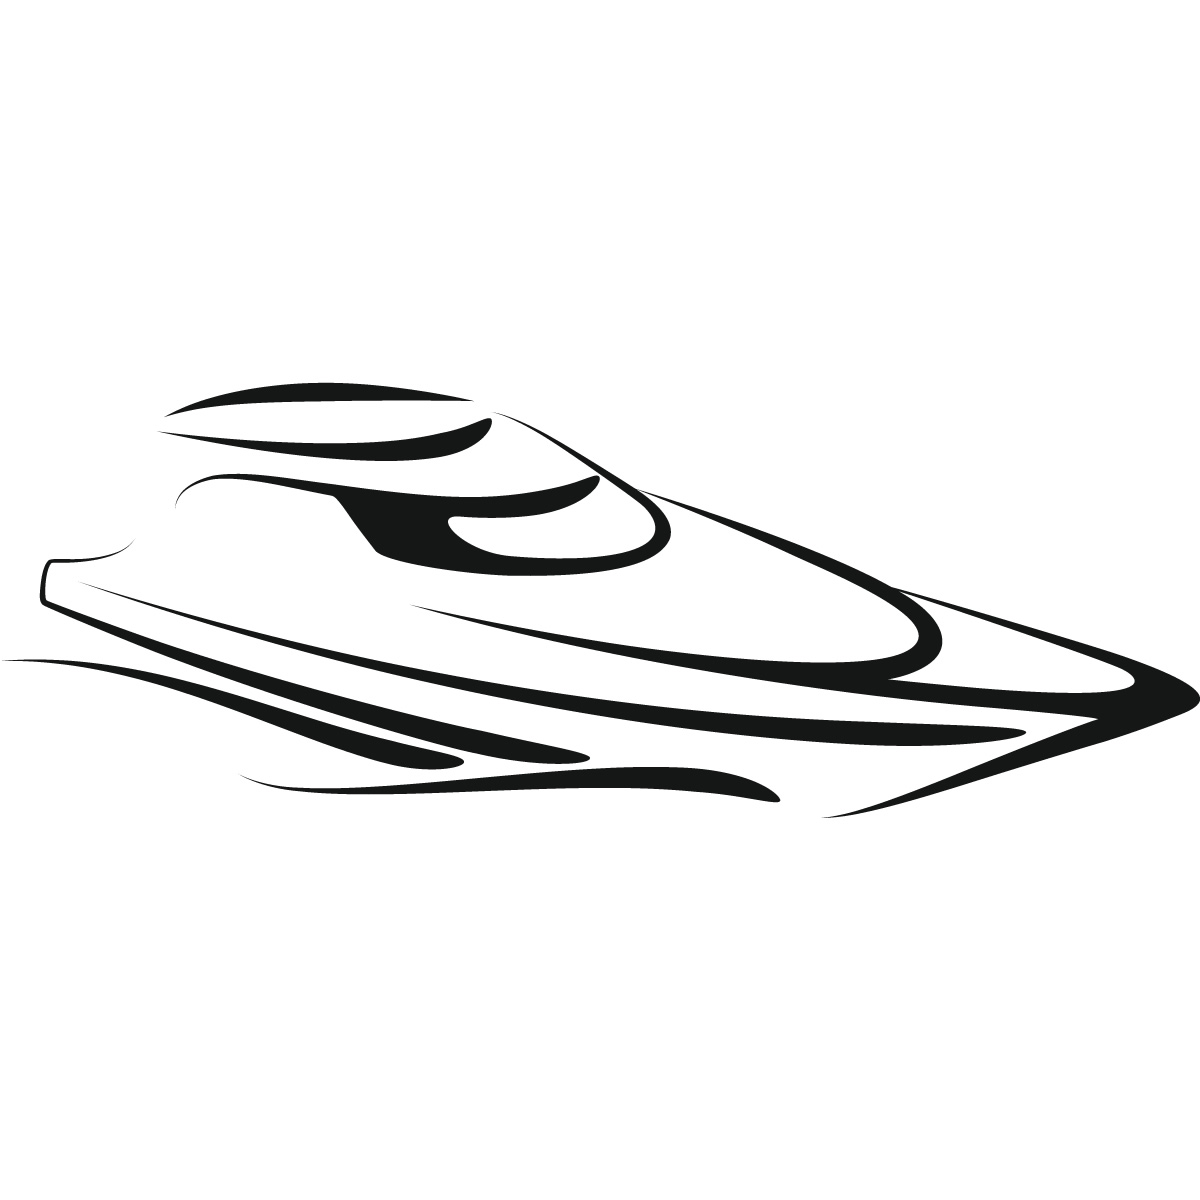 Speed boat clipart black and white.